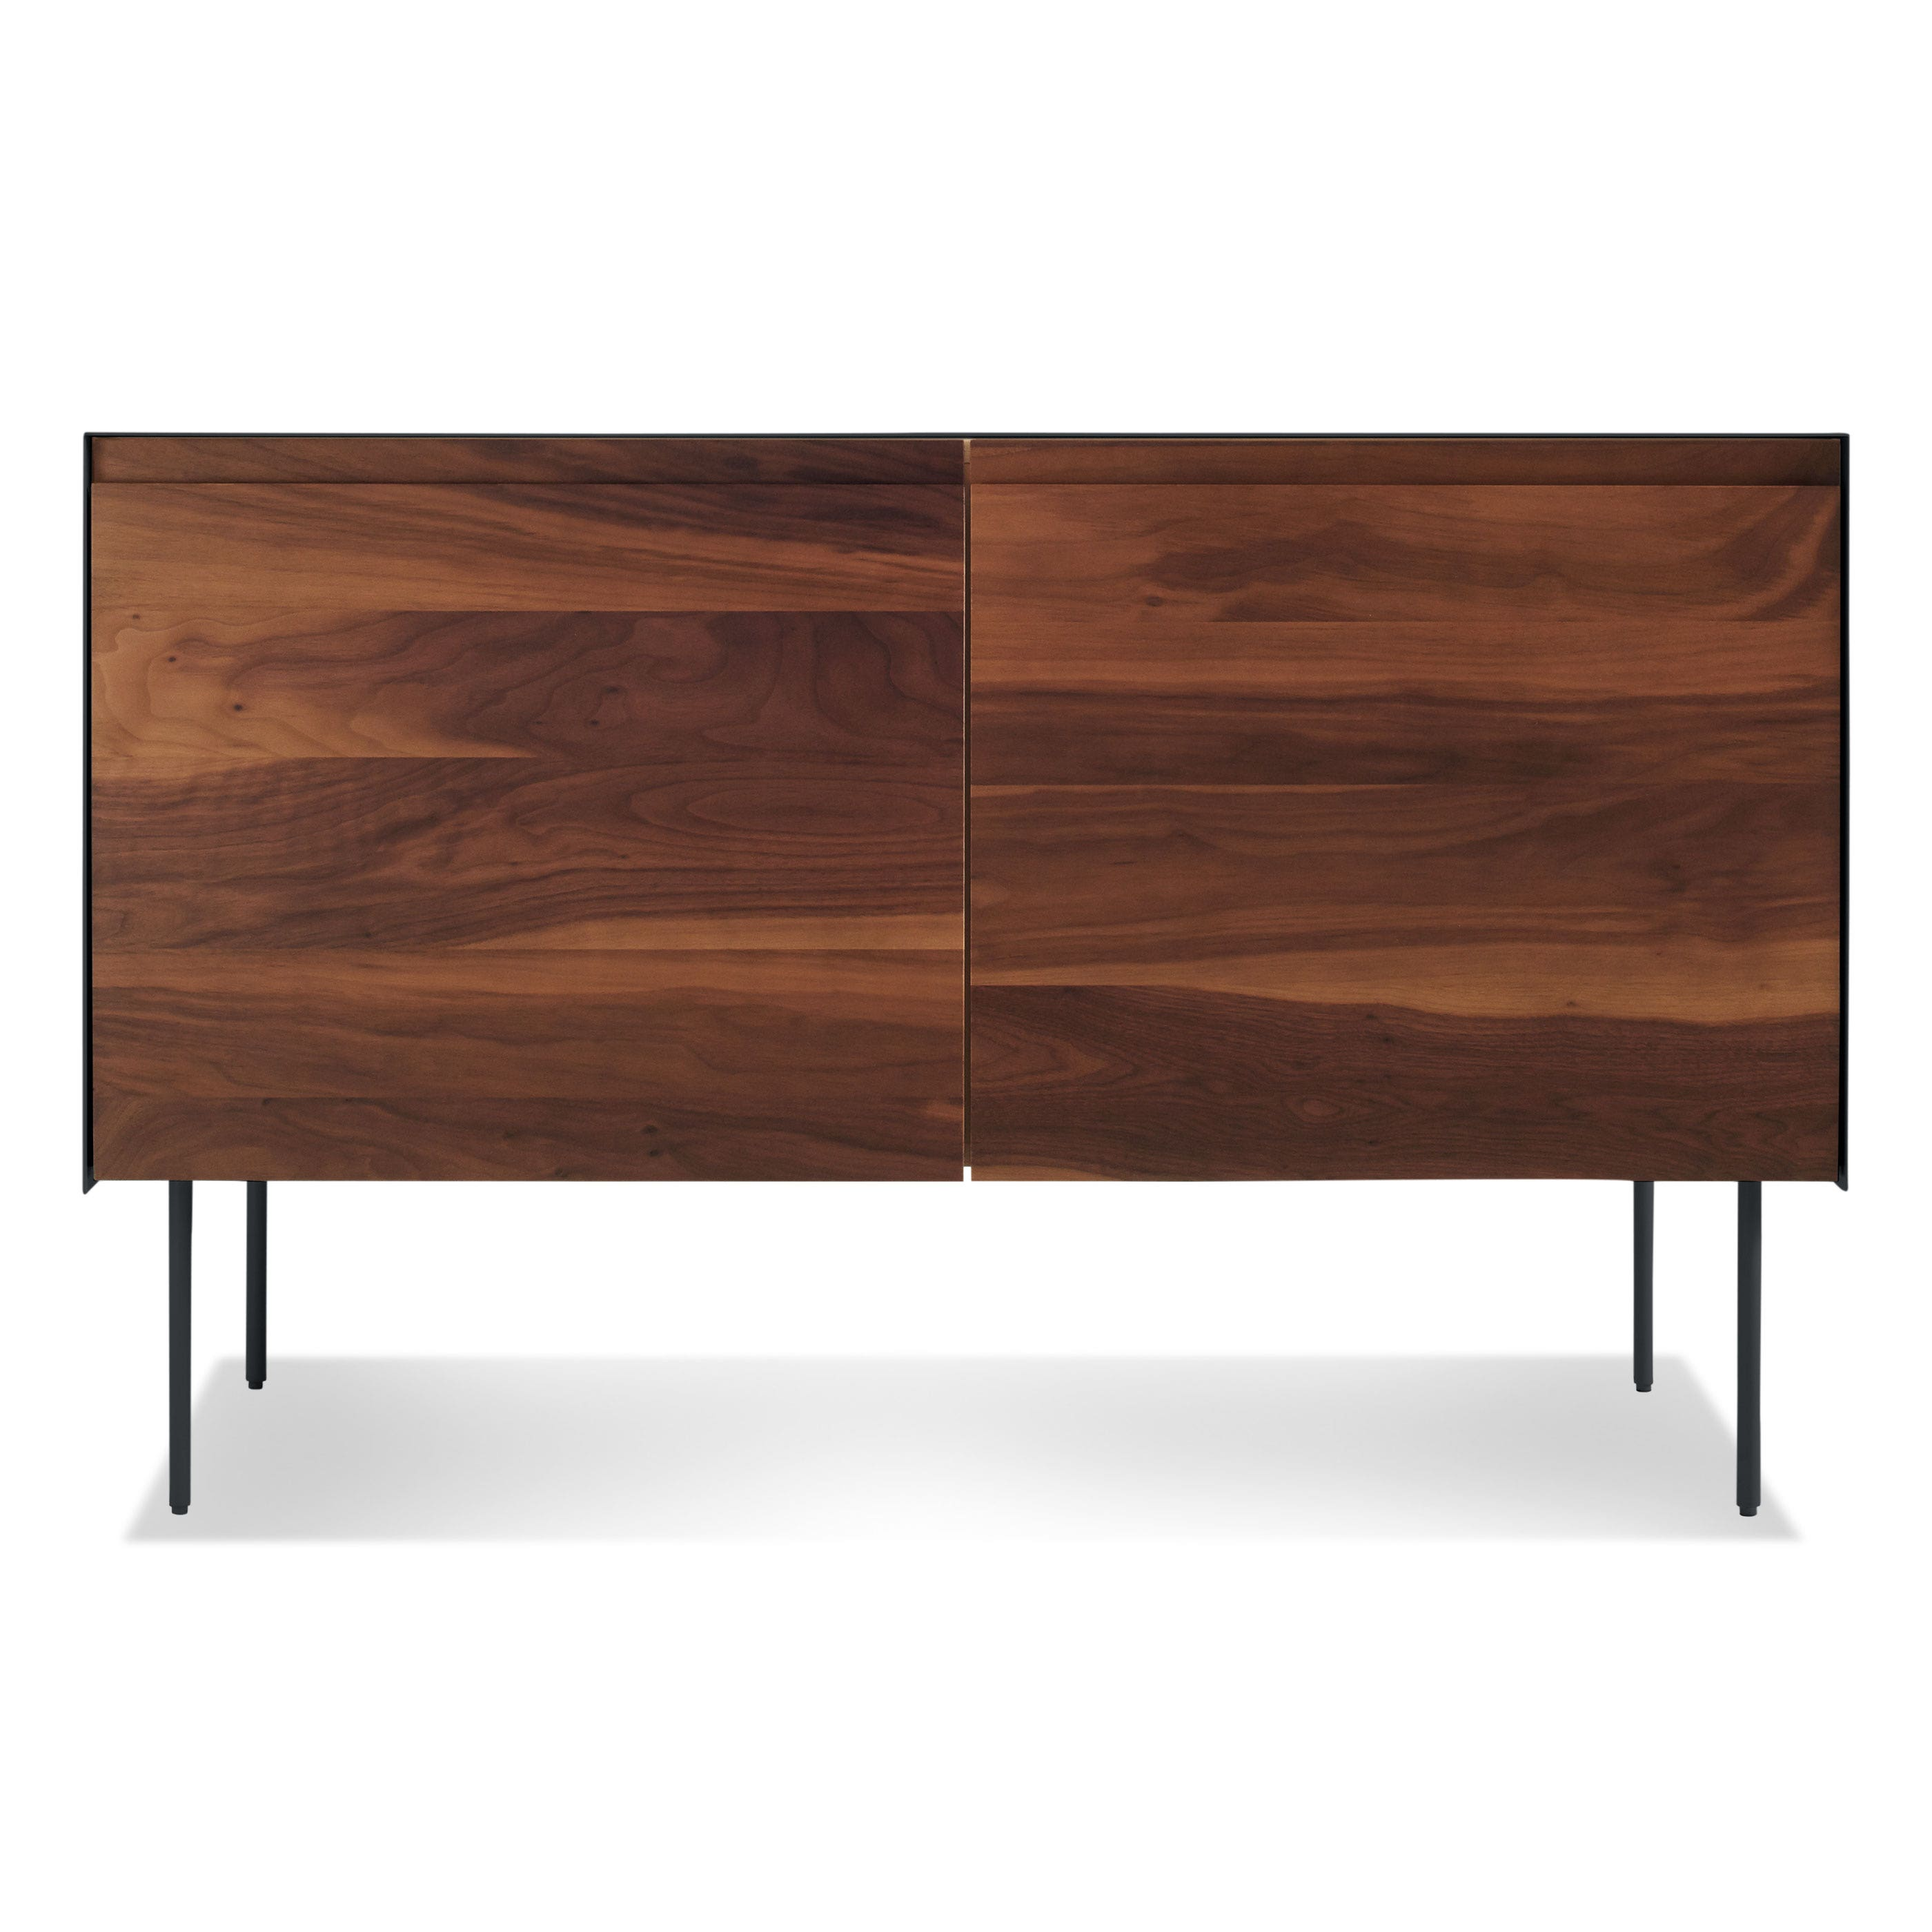 Previous image Clad 2 Door Credenza - Walnut / Oblivion ...  sc 1 st  Blu Dot : clad door - pezcame.com